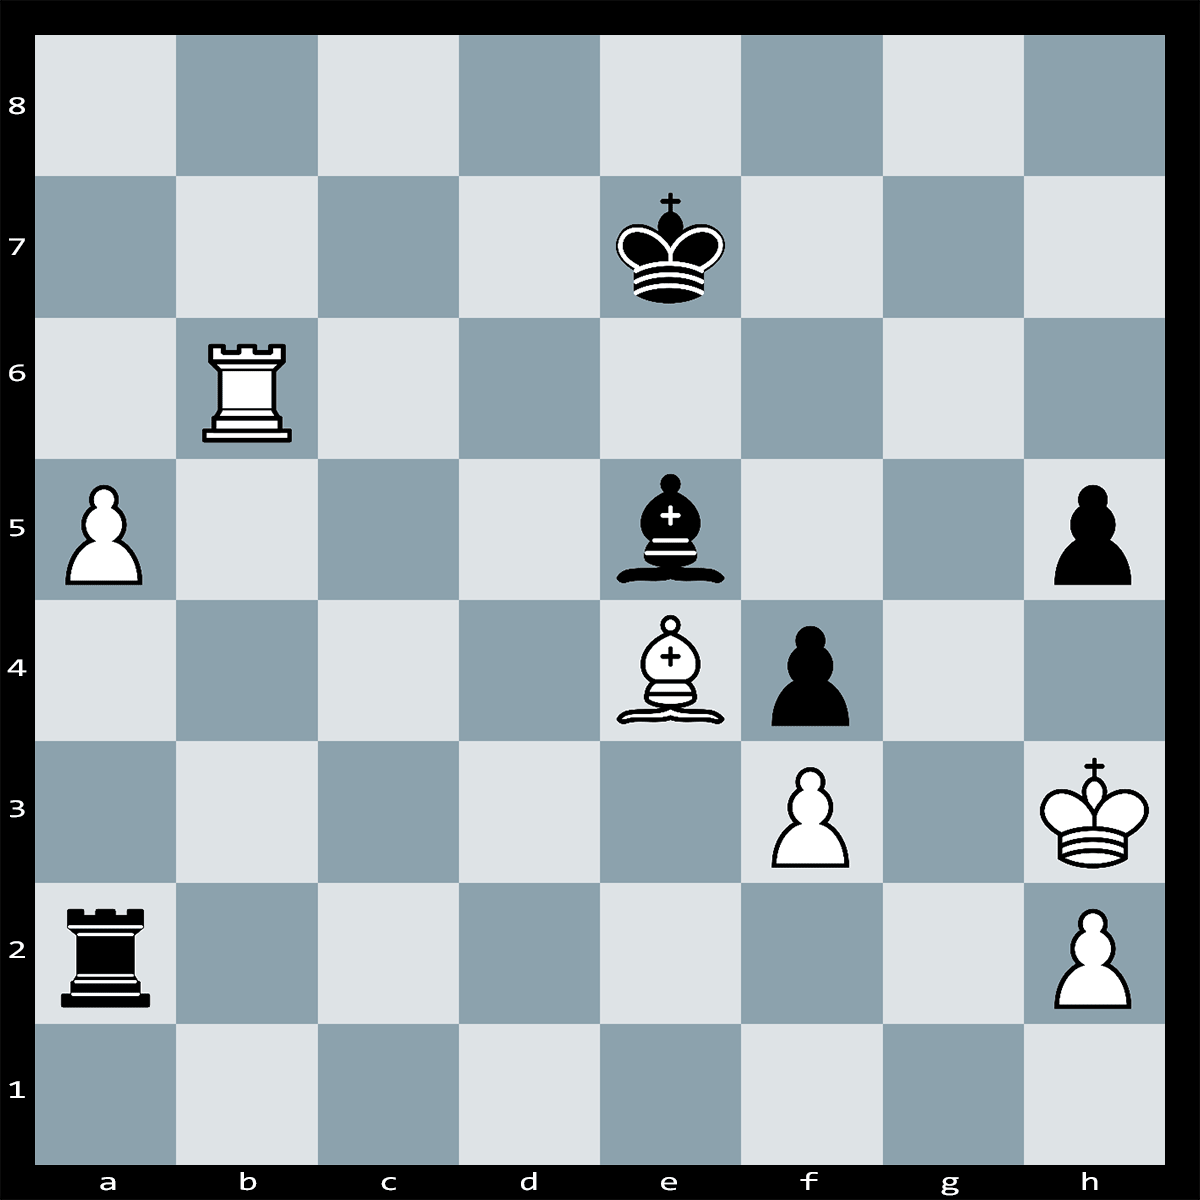 What is the Best Move for White - Chess Puzzle #11